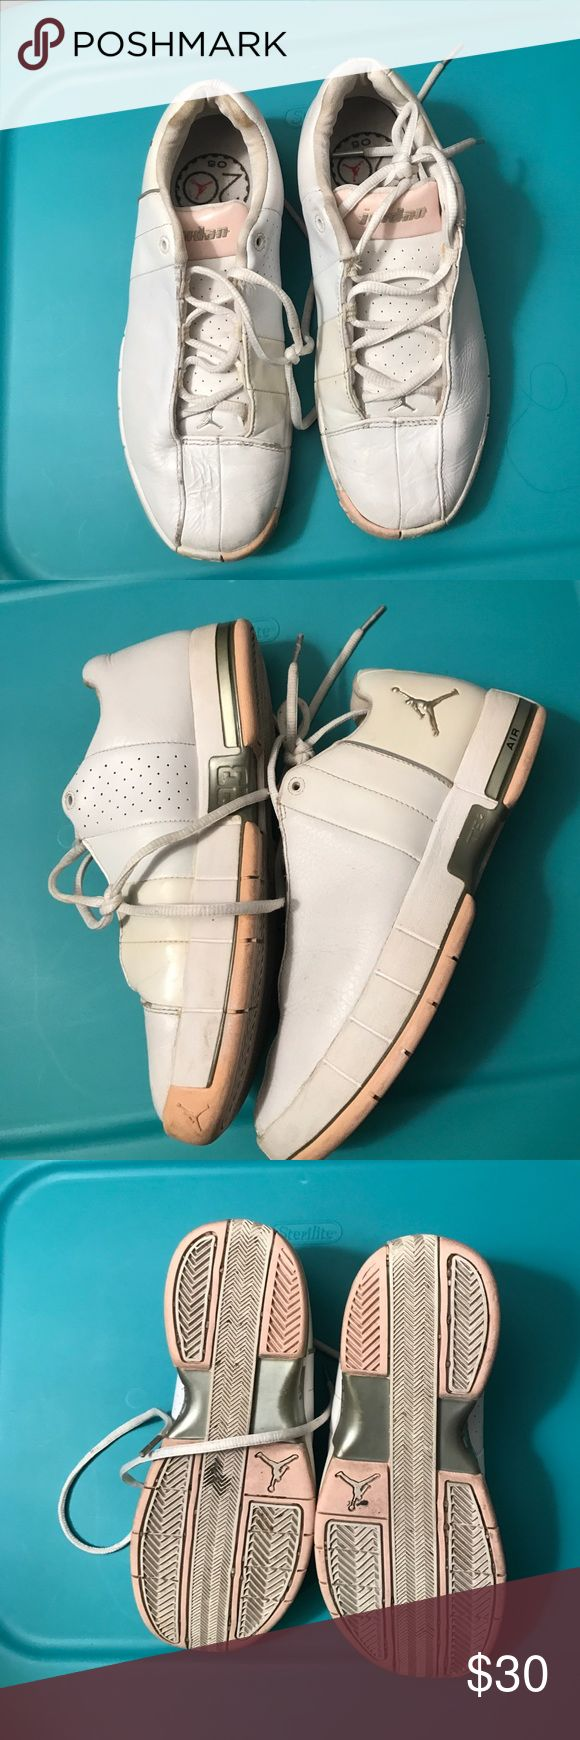 Jordan's women's Women Jordan's please see pictures for condition Jordan Shoes Sneakers